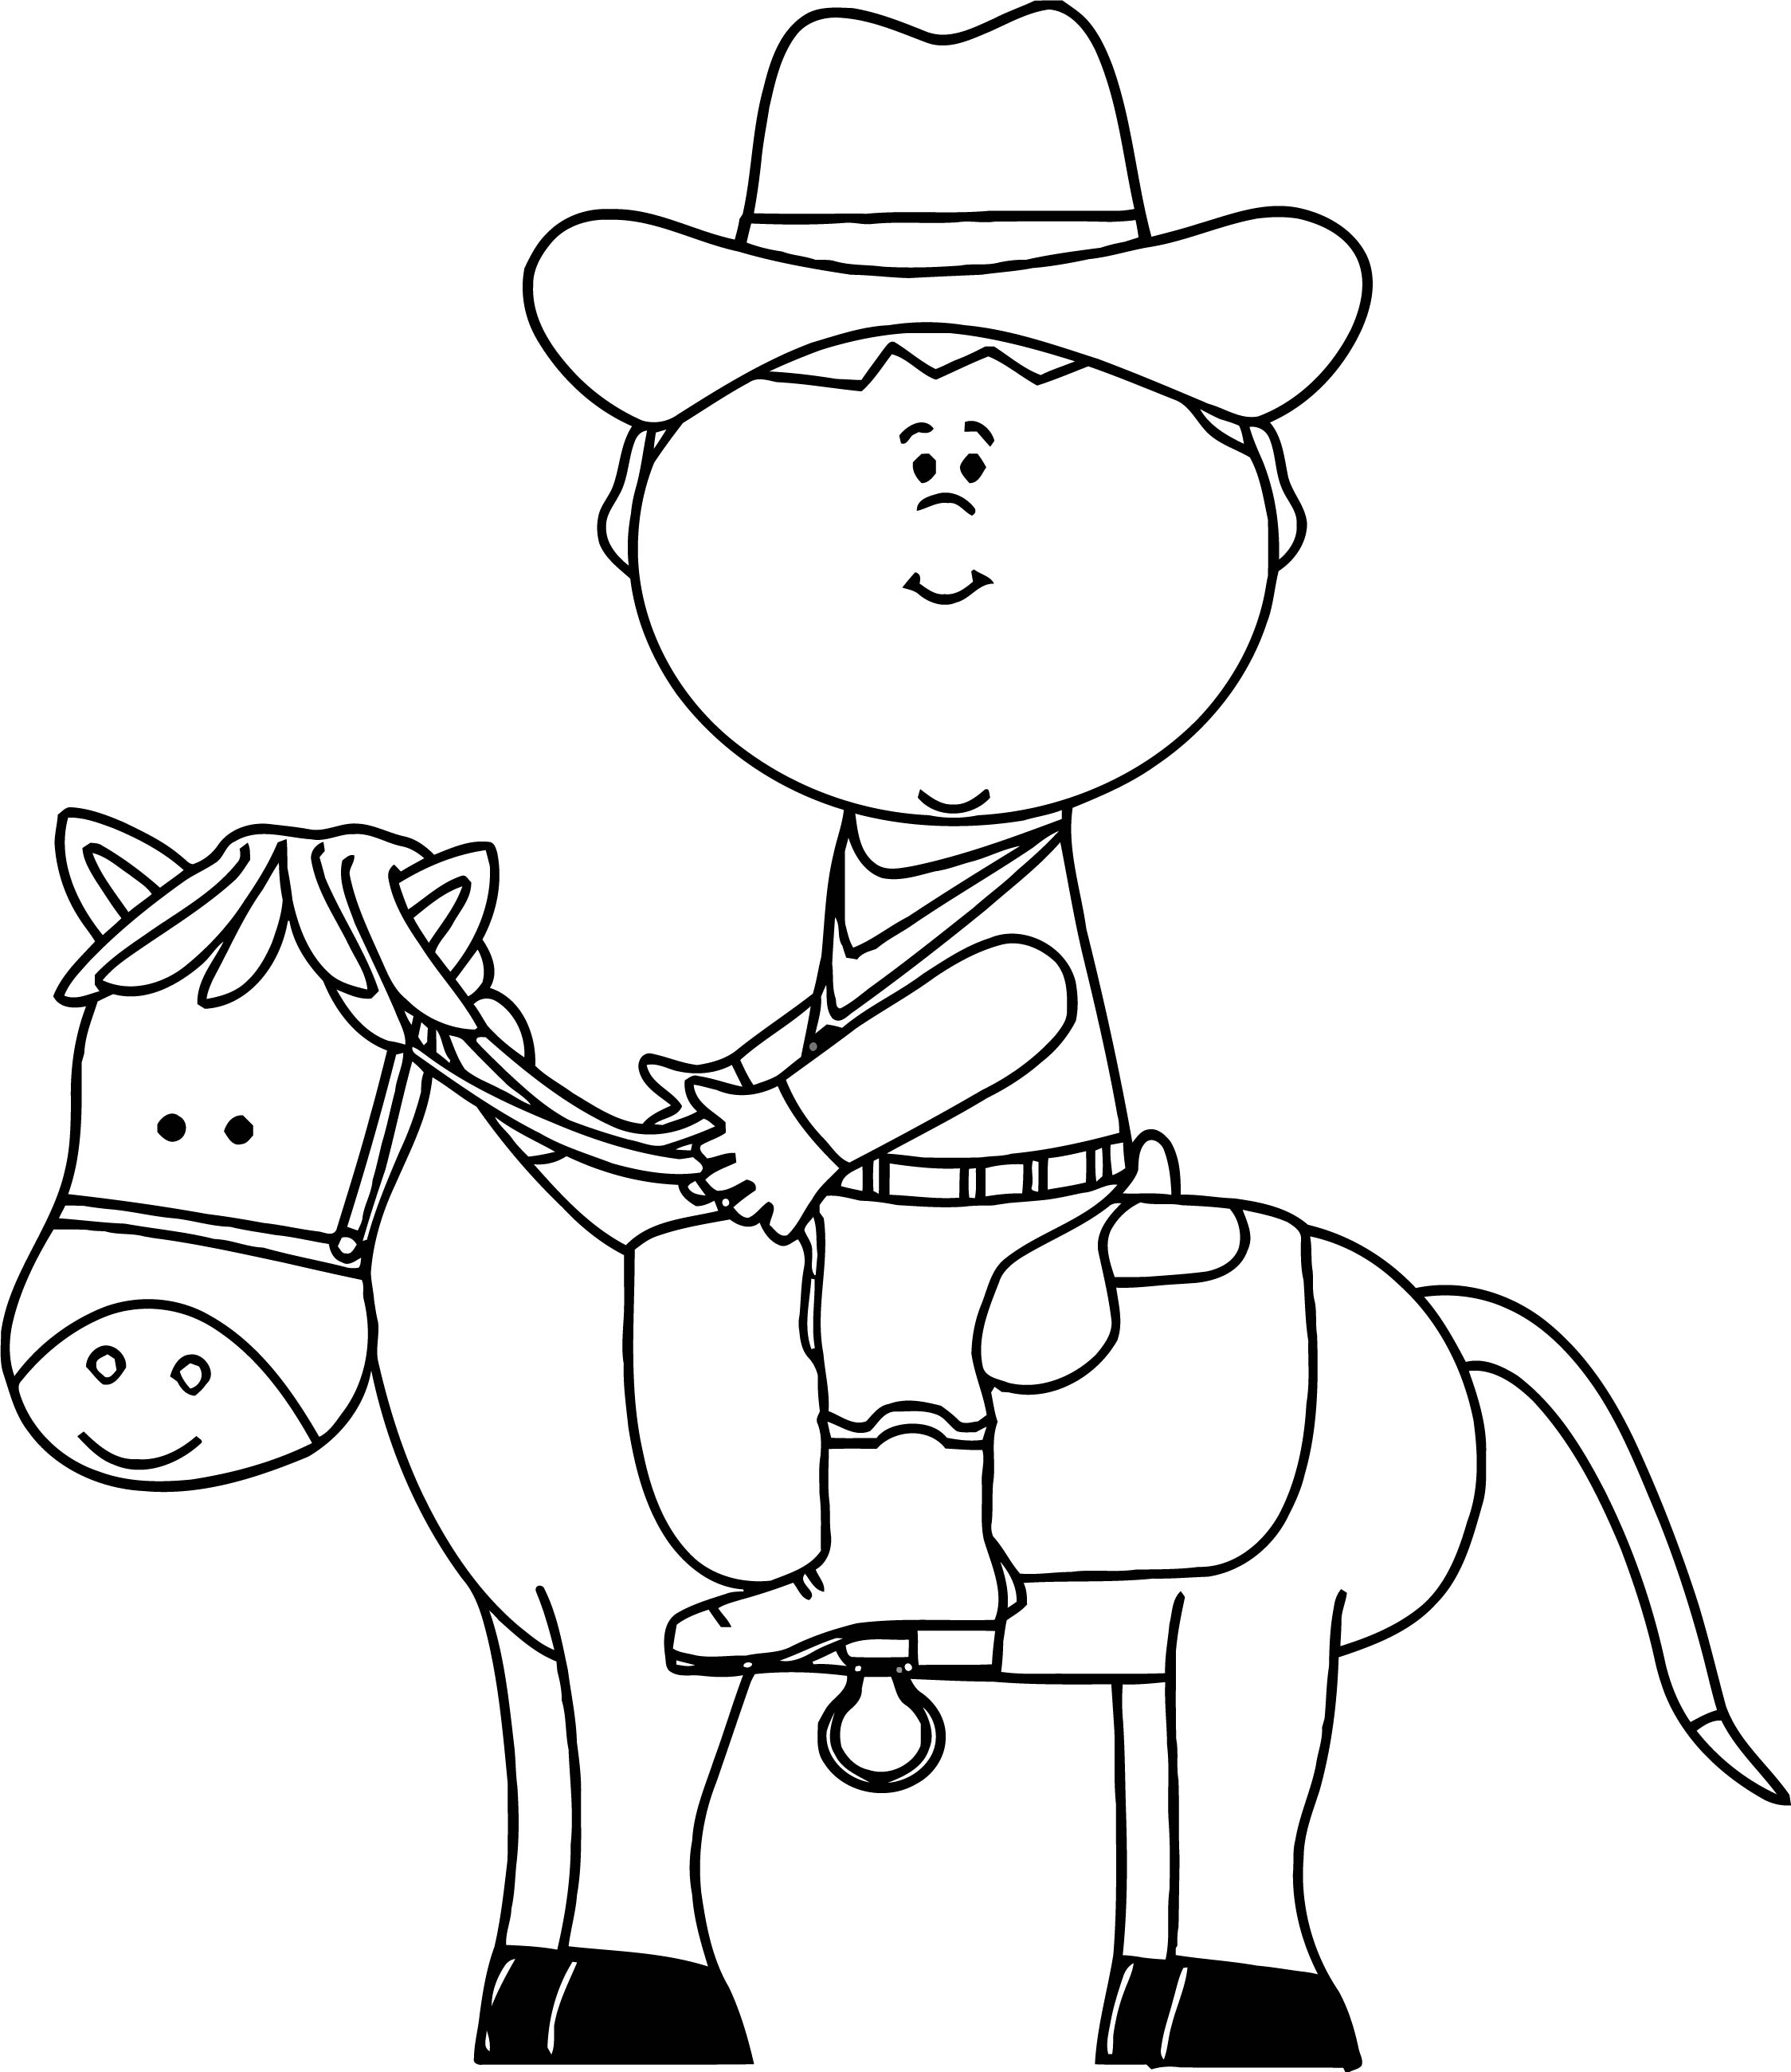 Horse Coloring Page Wecoloringpage 010